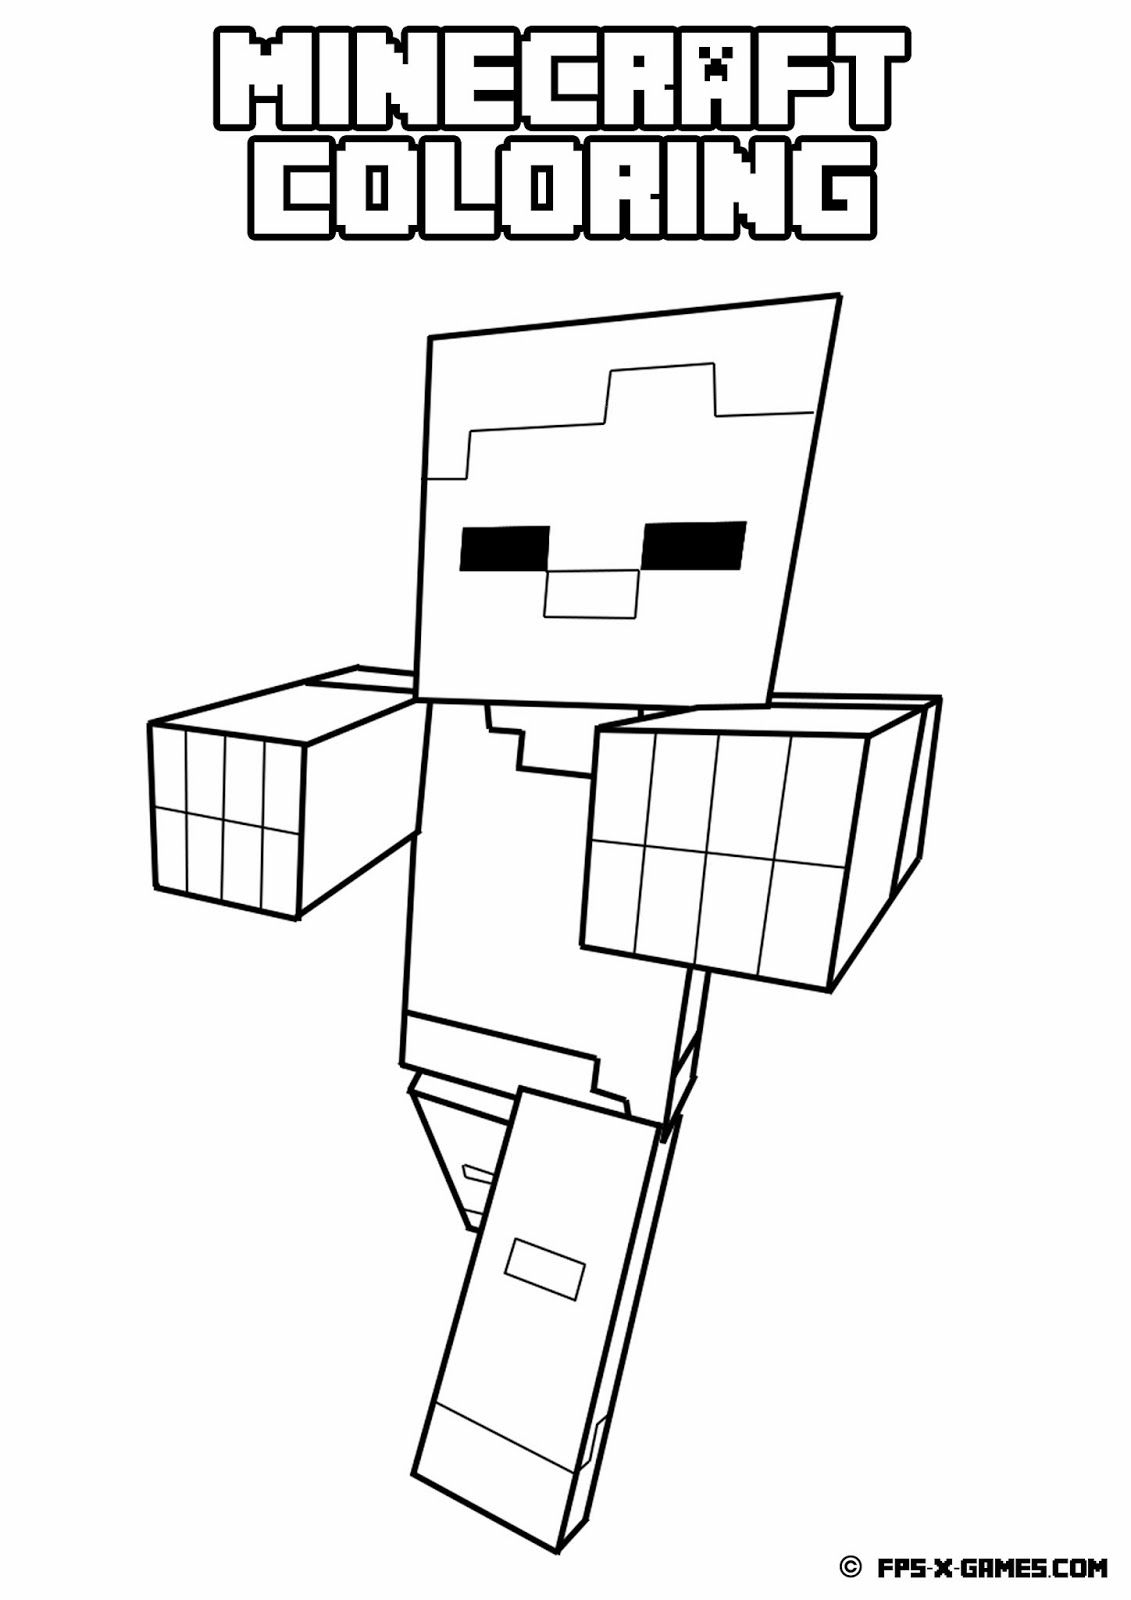 Coloring pages app